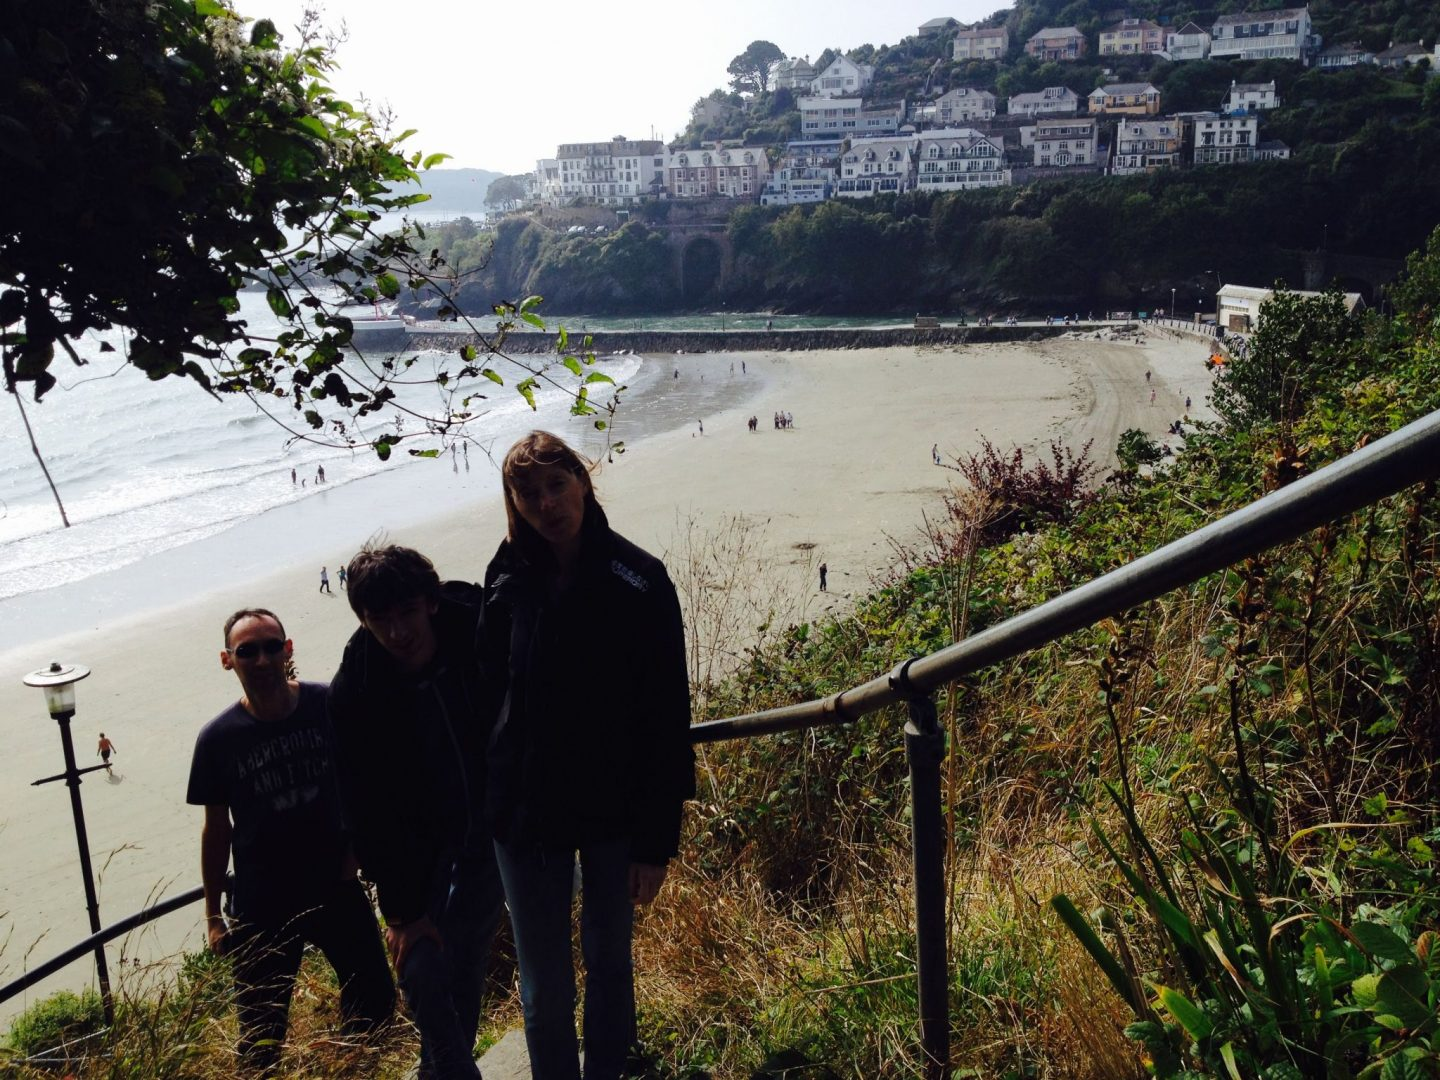 Family on the steps in Looe, Cornwall